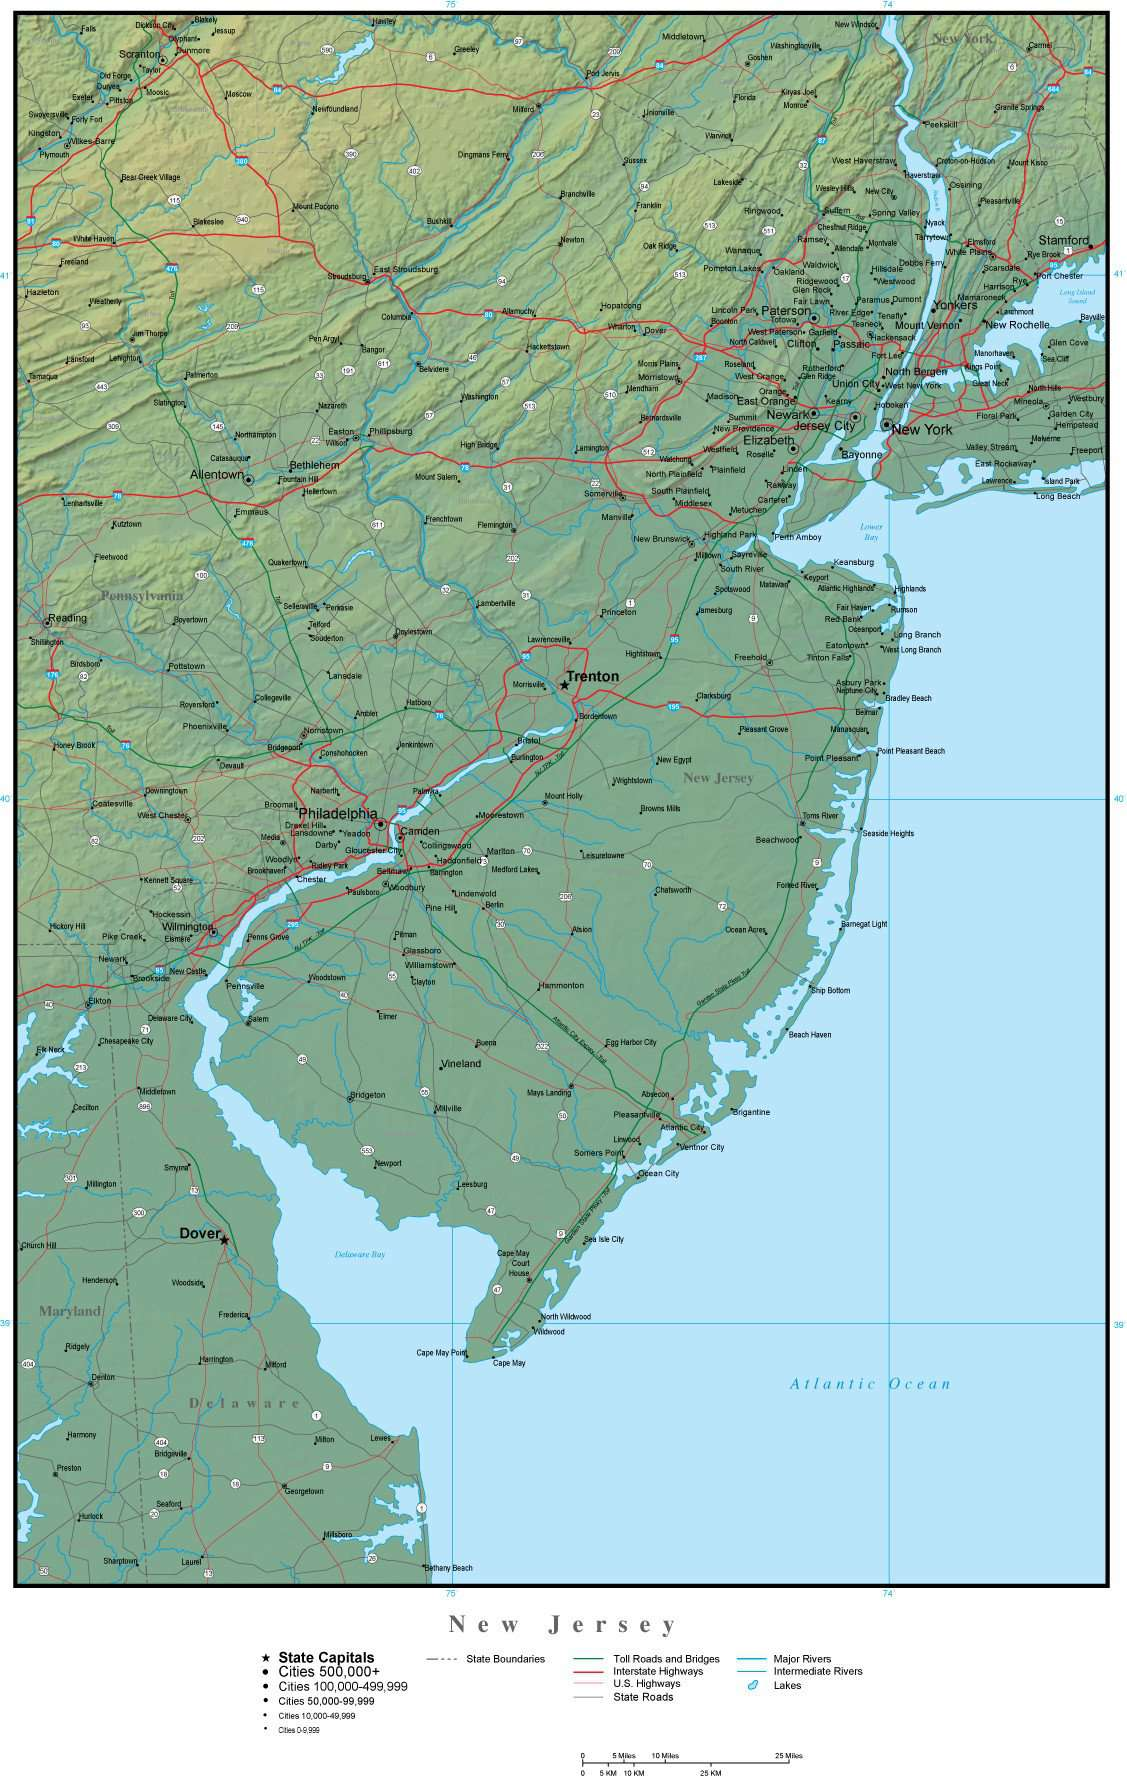 New Jersey On Map Of Usa.New Jersey State Map Plus Terrain With Cities Roads Map Resources